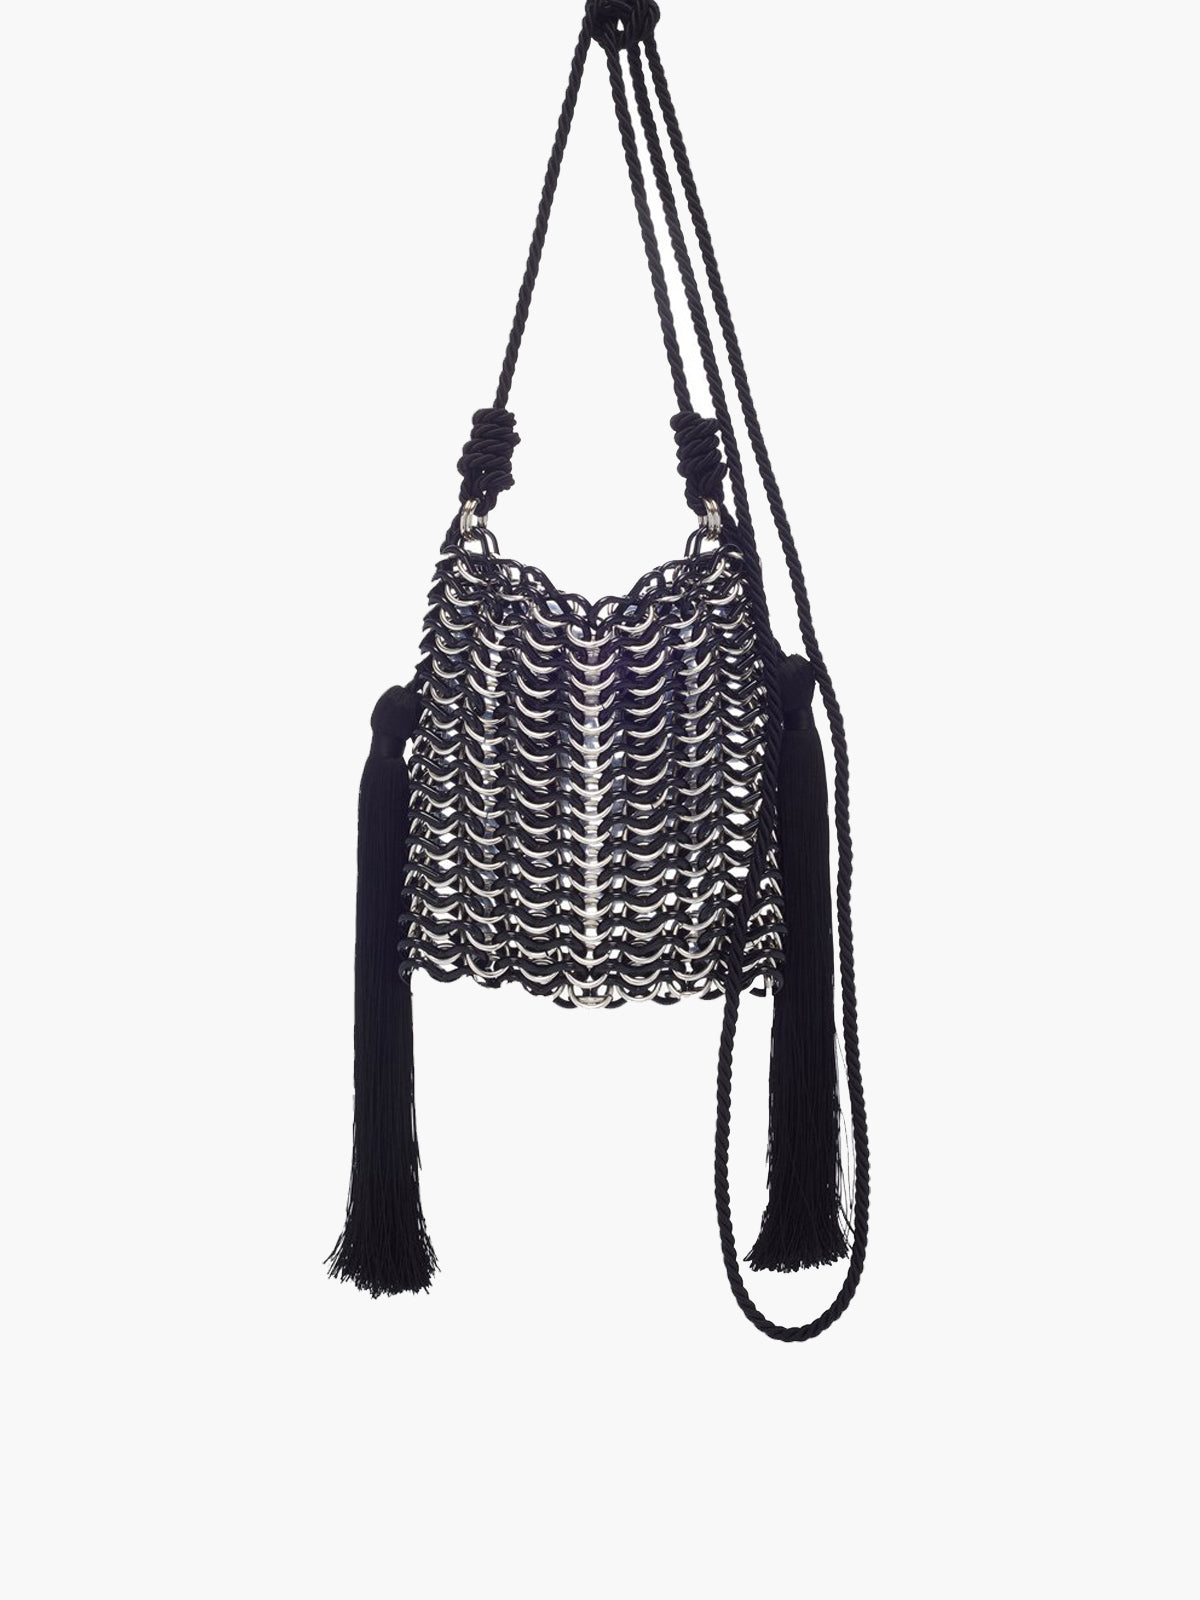 Luisella Shell Bag | Black